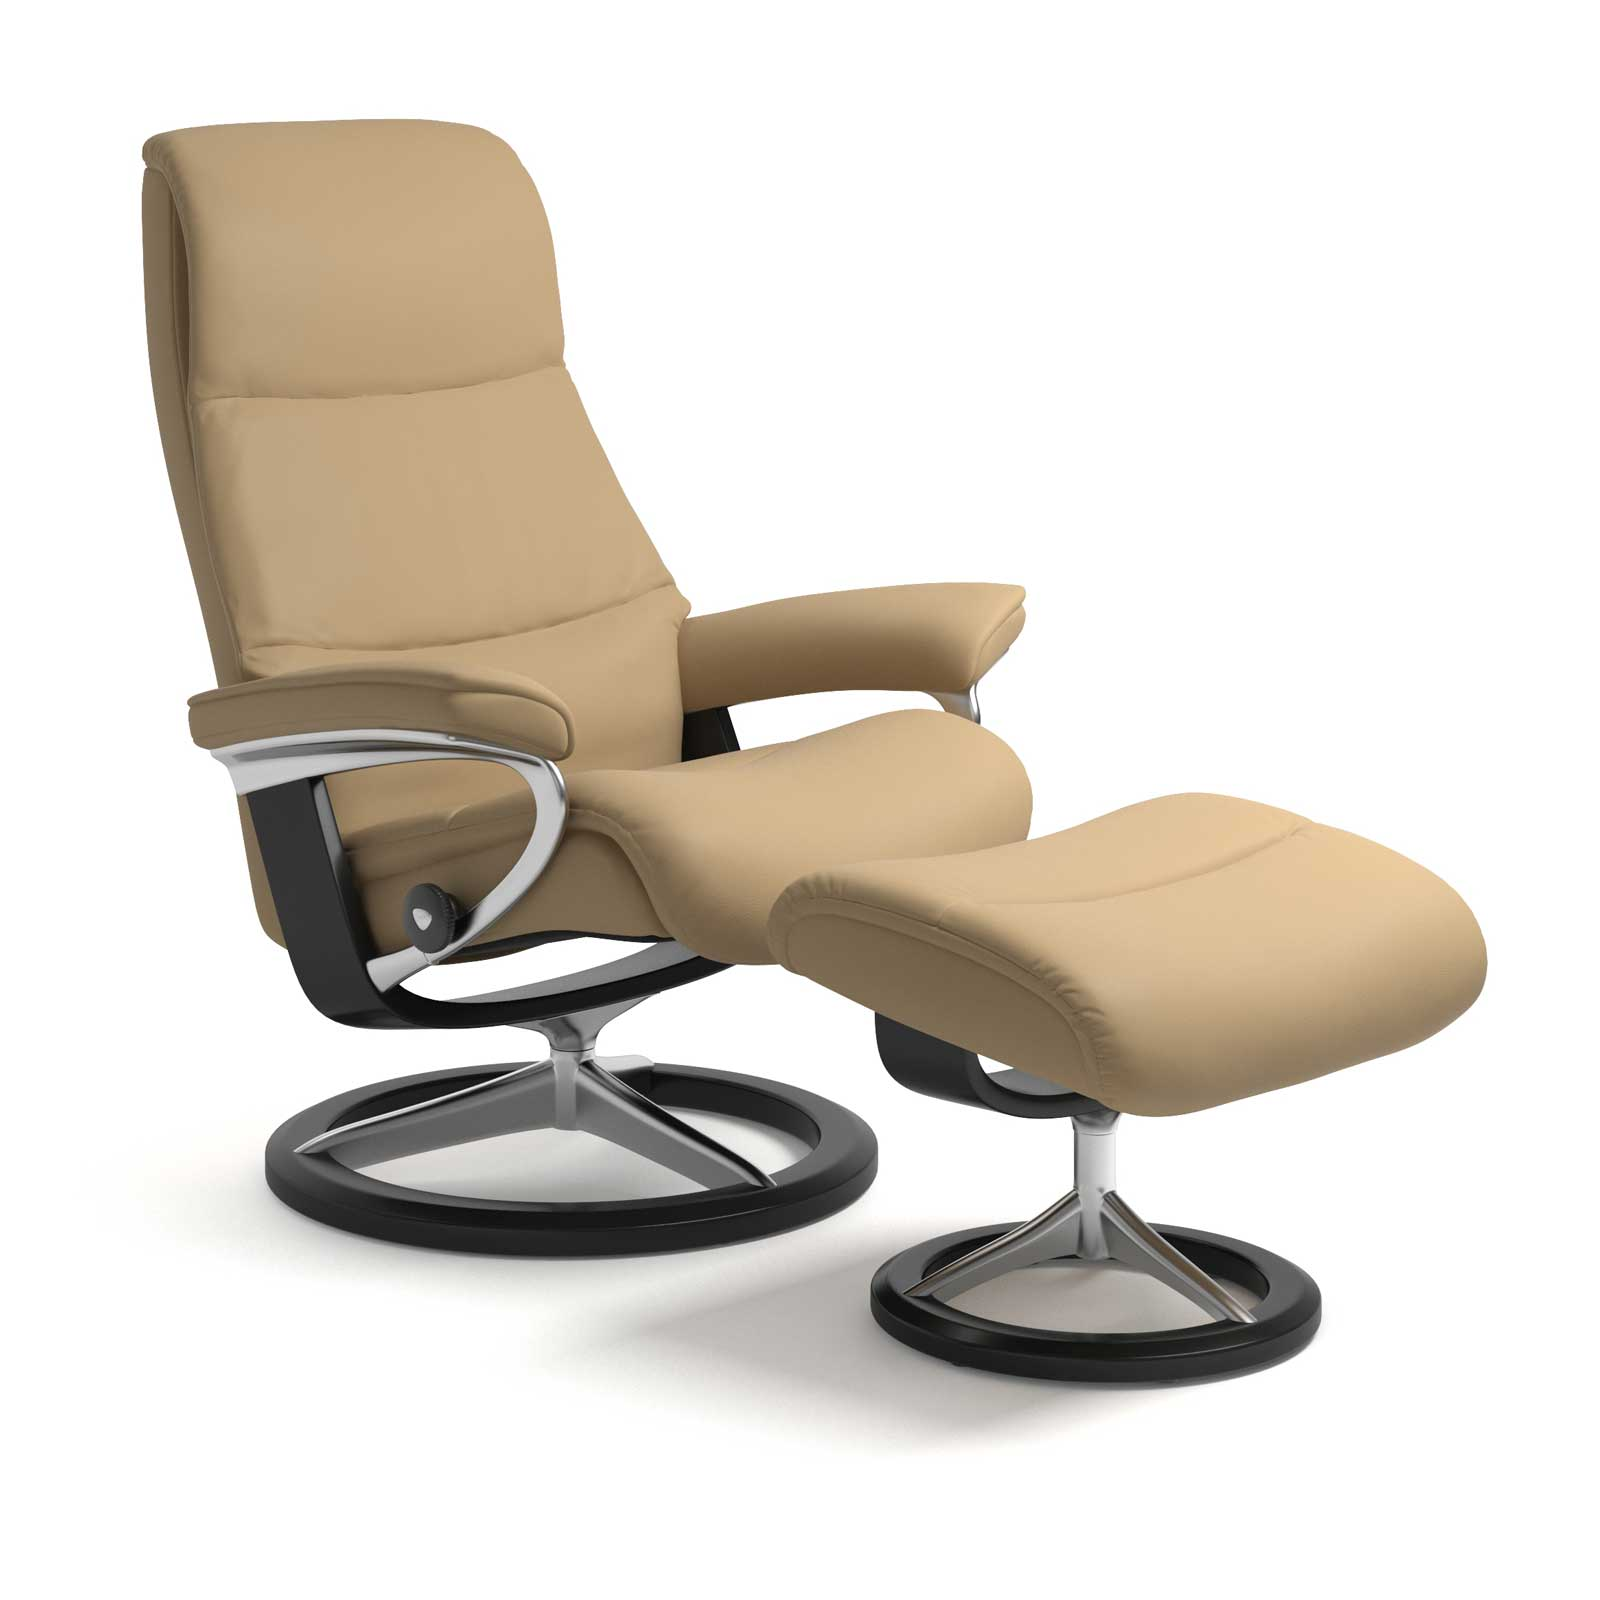 Sessel Sand Stressless Sessel View Signature Paloma Sand Mit Hocker